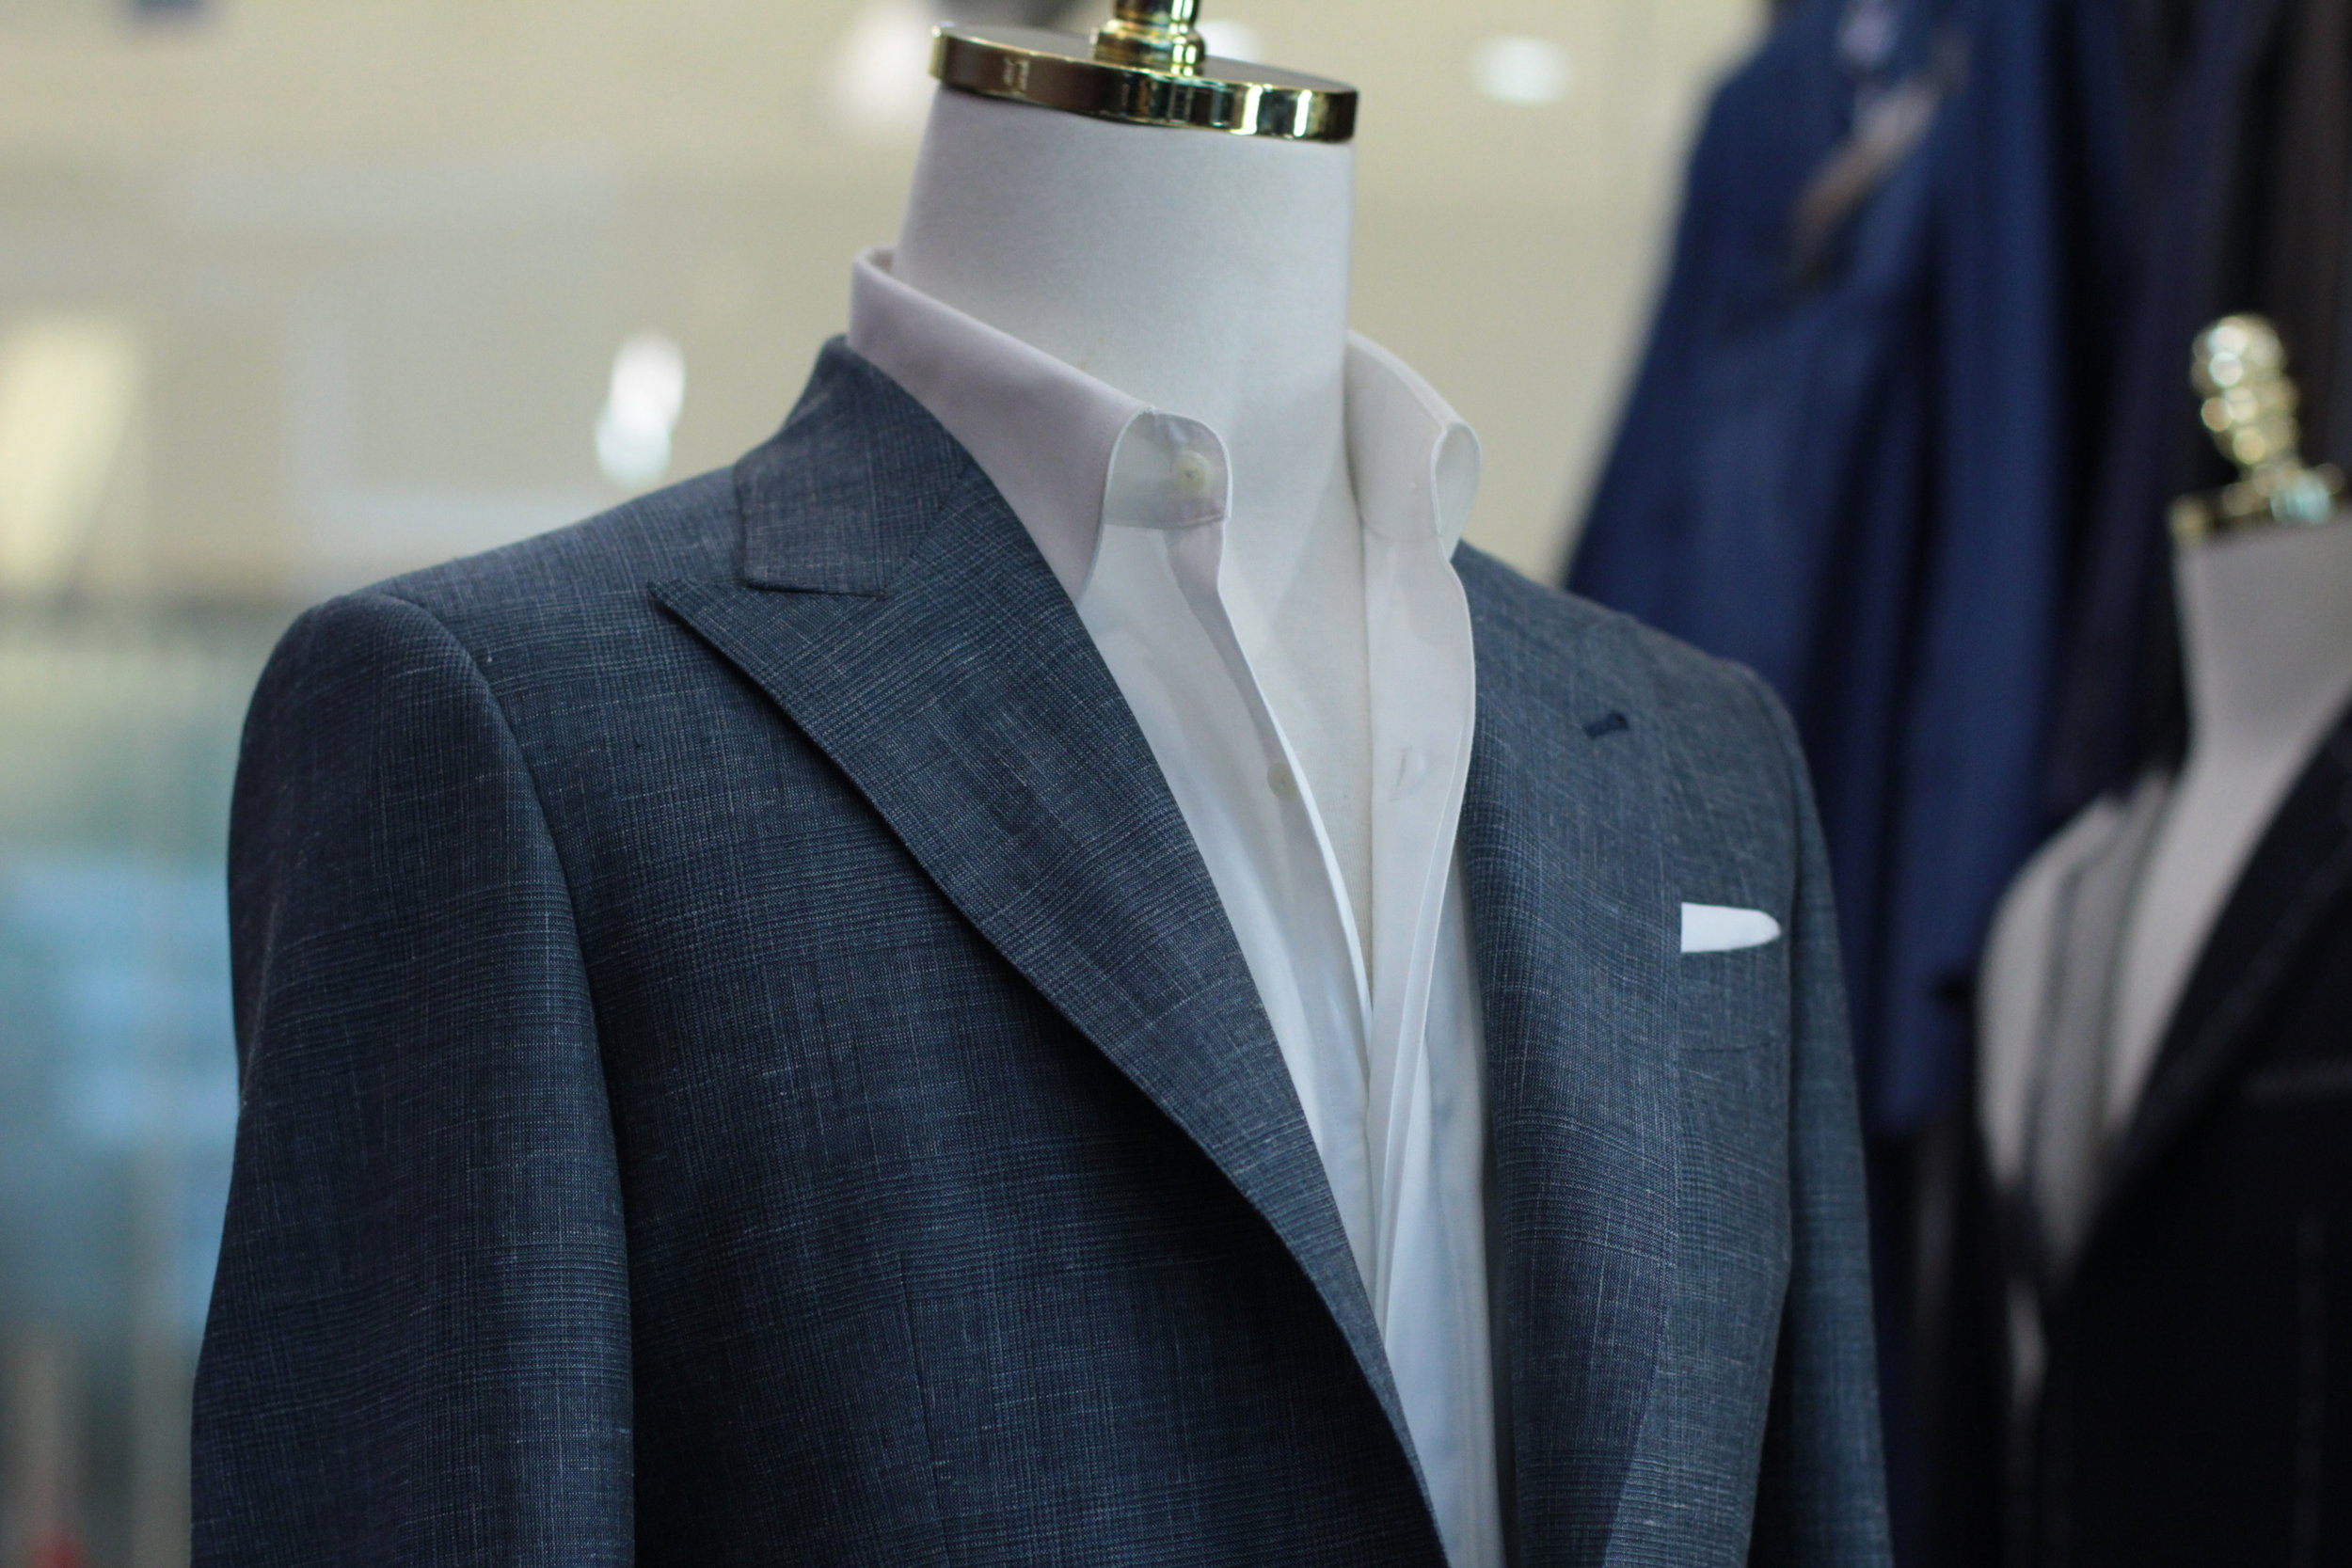 Made Suits Dragon Gate   STYLBIELLA   Suit   Made to Measure Suits Peak Lapel.JPG